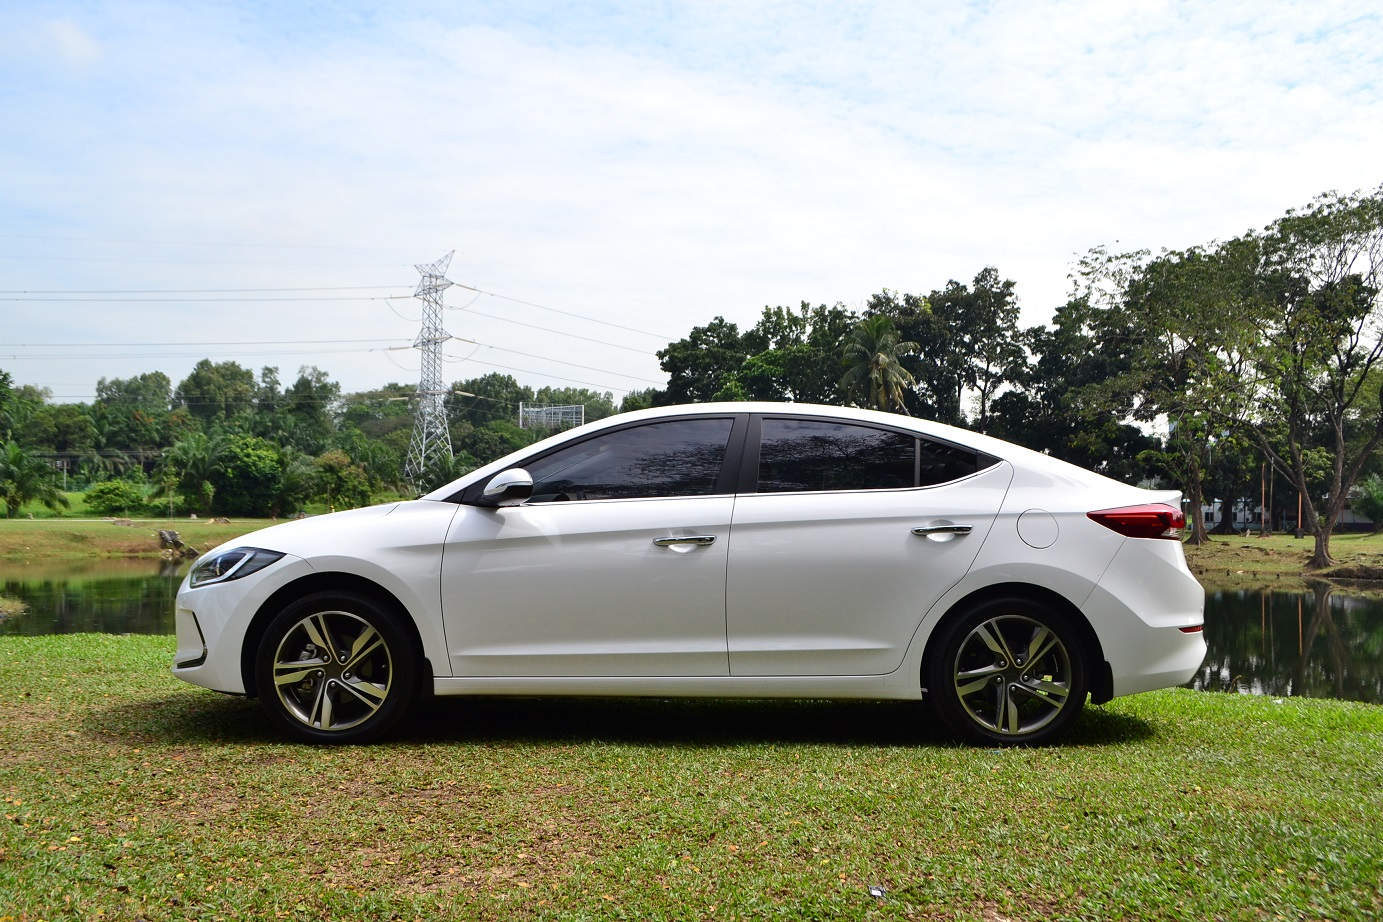 The Hyundai Elantra and Elantra Sport - Covering all Bases - kensomuse